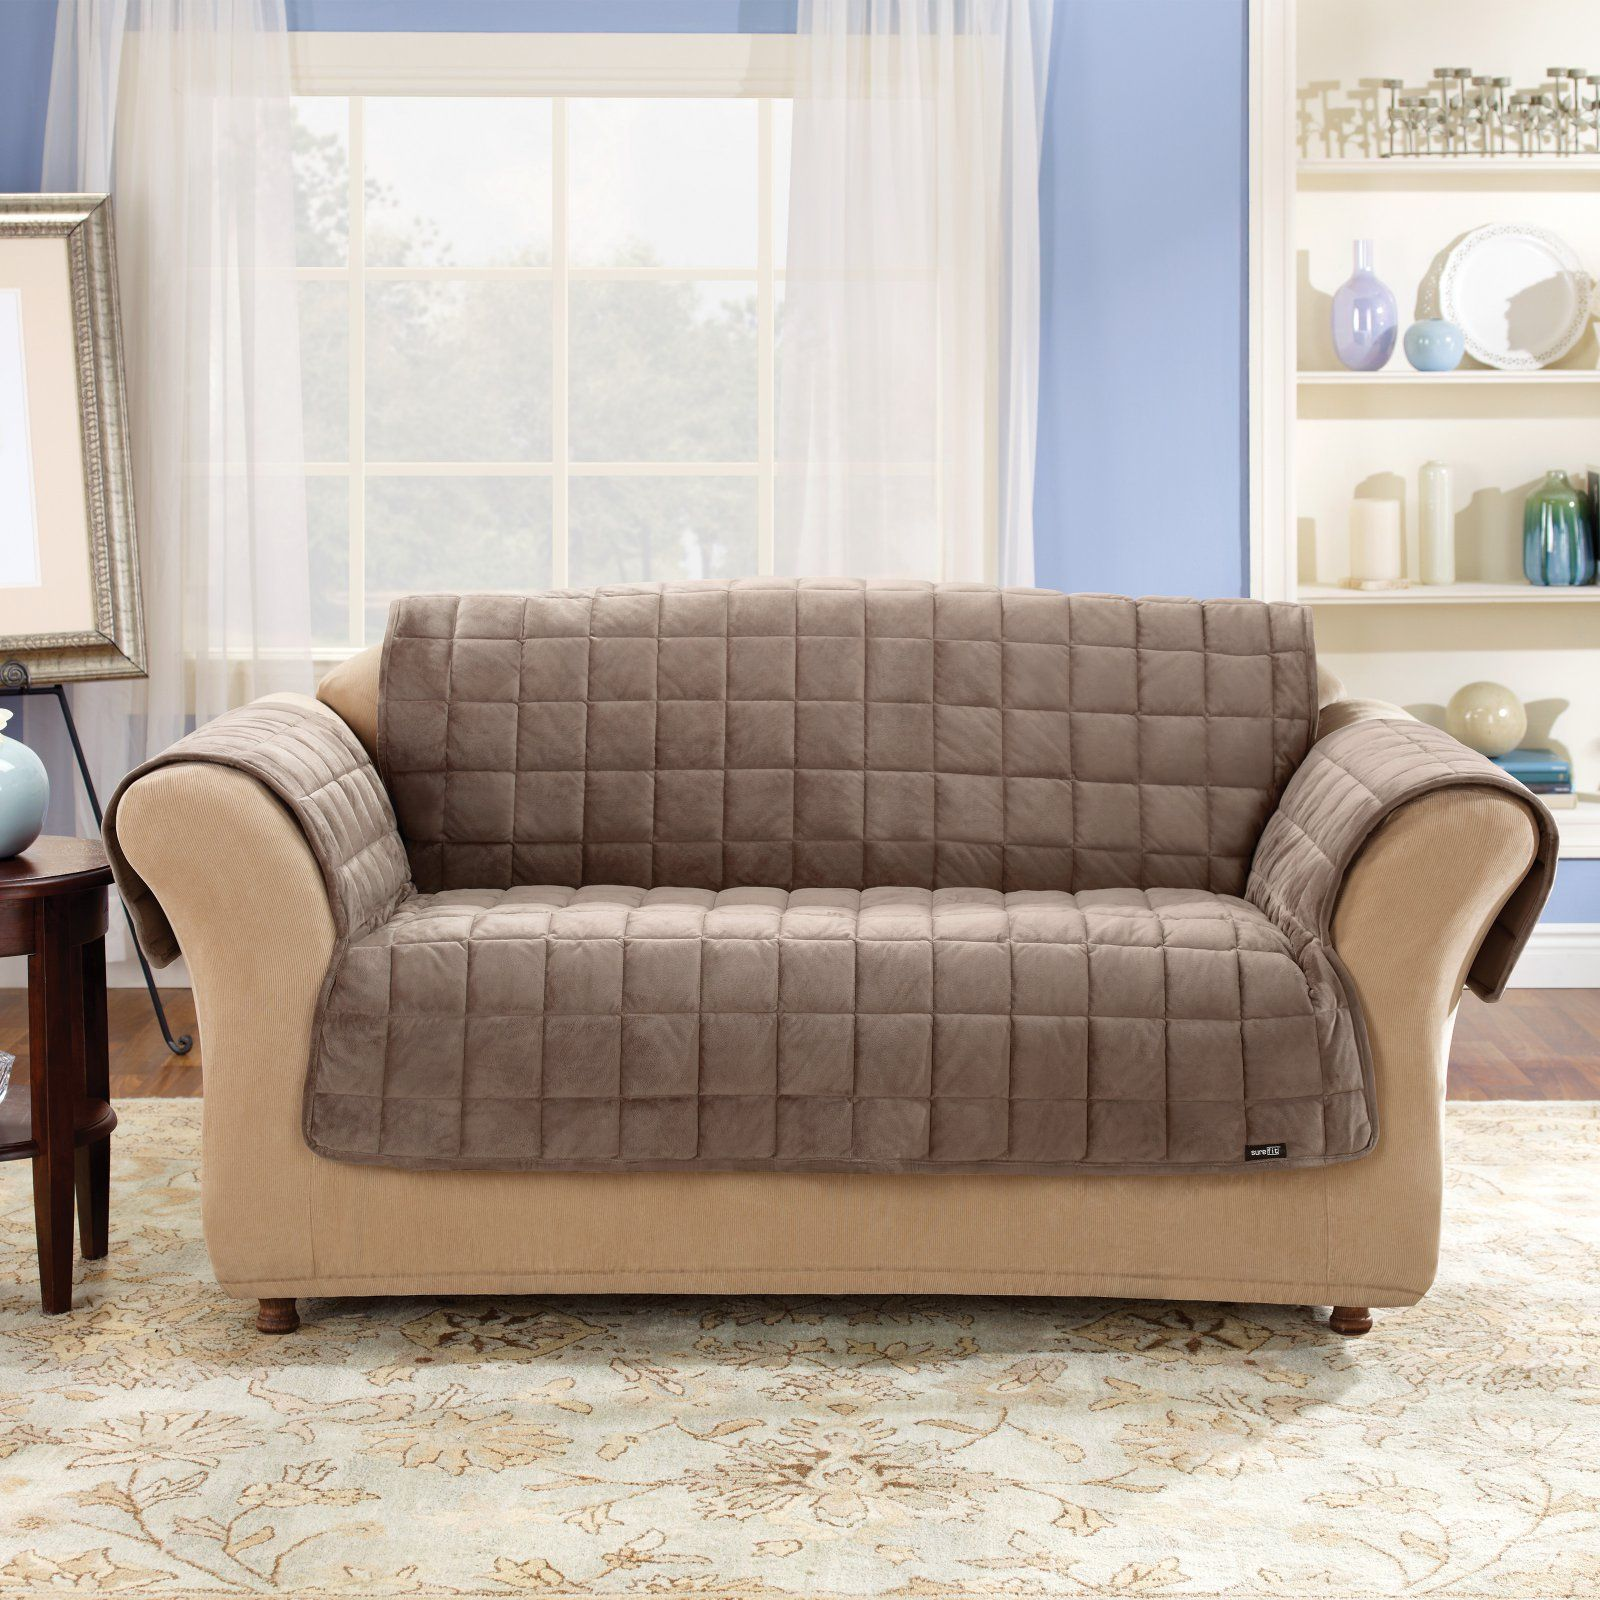 Incredible Sure Fit Deluxe Sofa Pet Cover In 2019 Products Machost Co Dining Chair Design Ideas Machostcouk